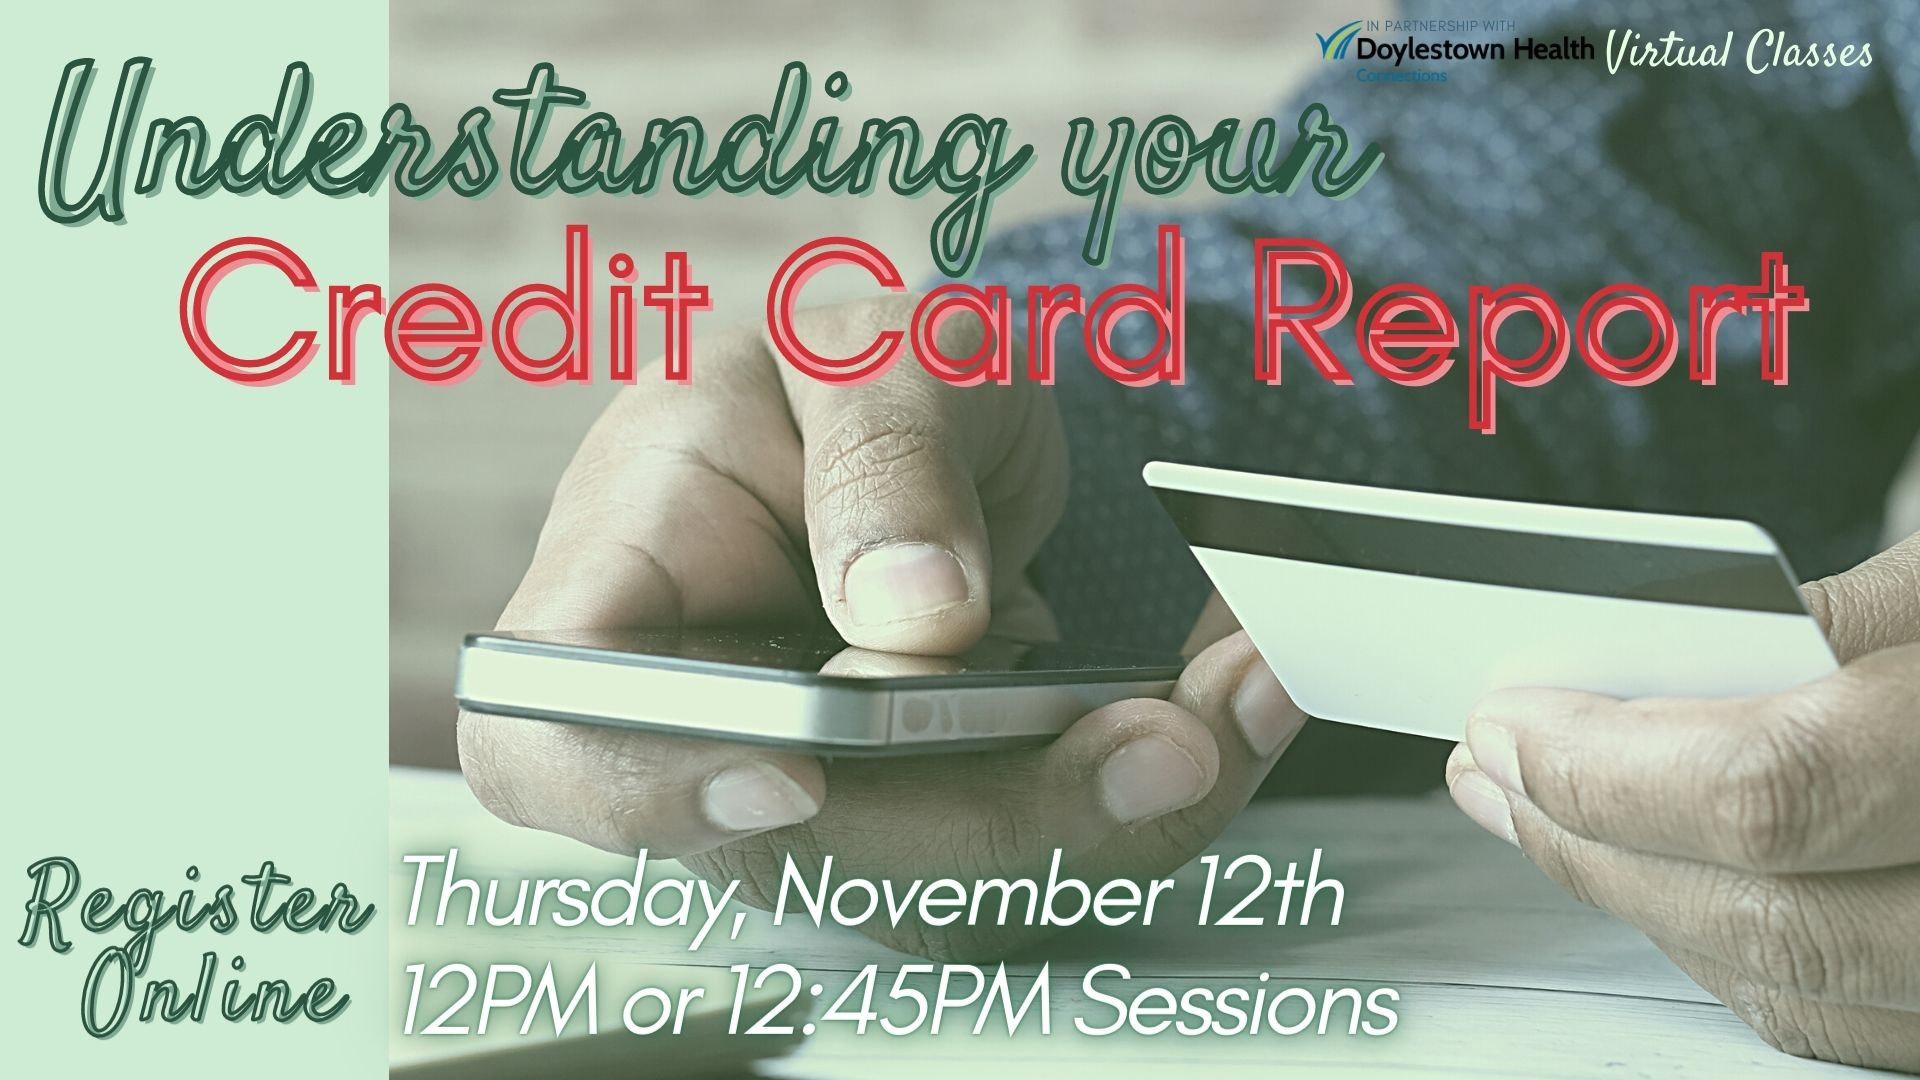 Understanding your Credit Card Report (Webinar) 12:45PM Session